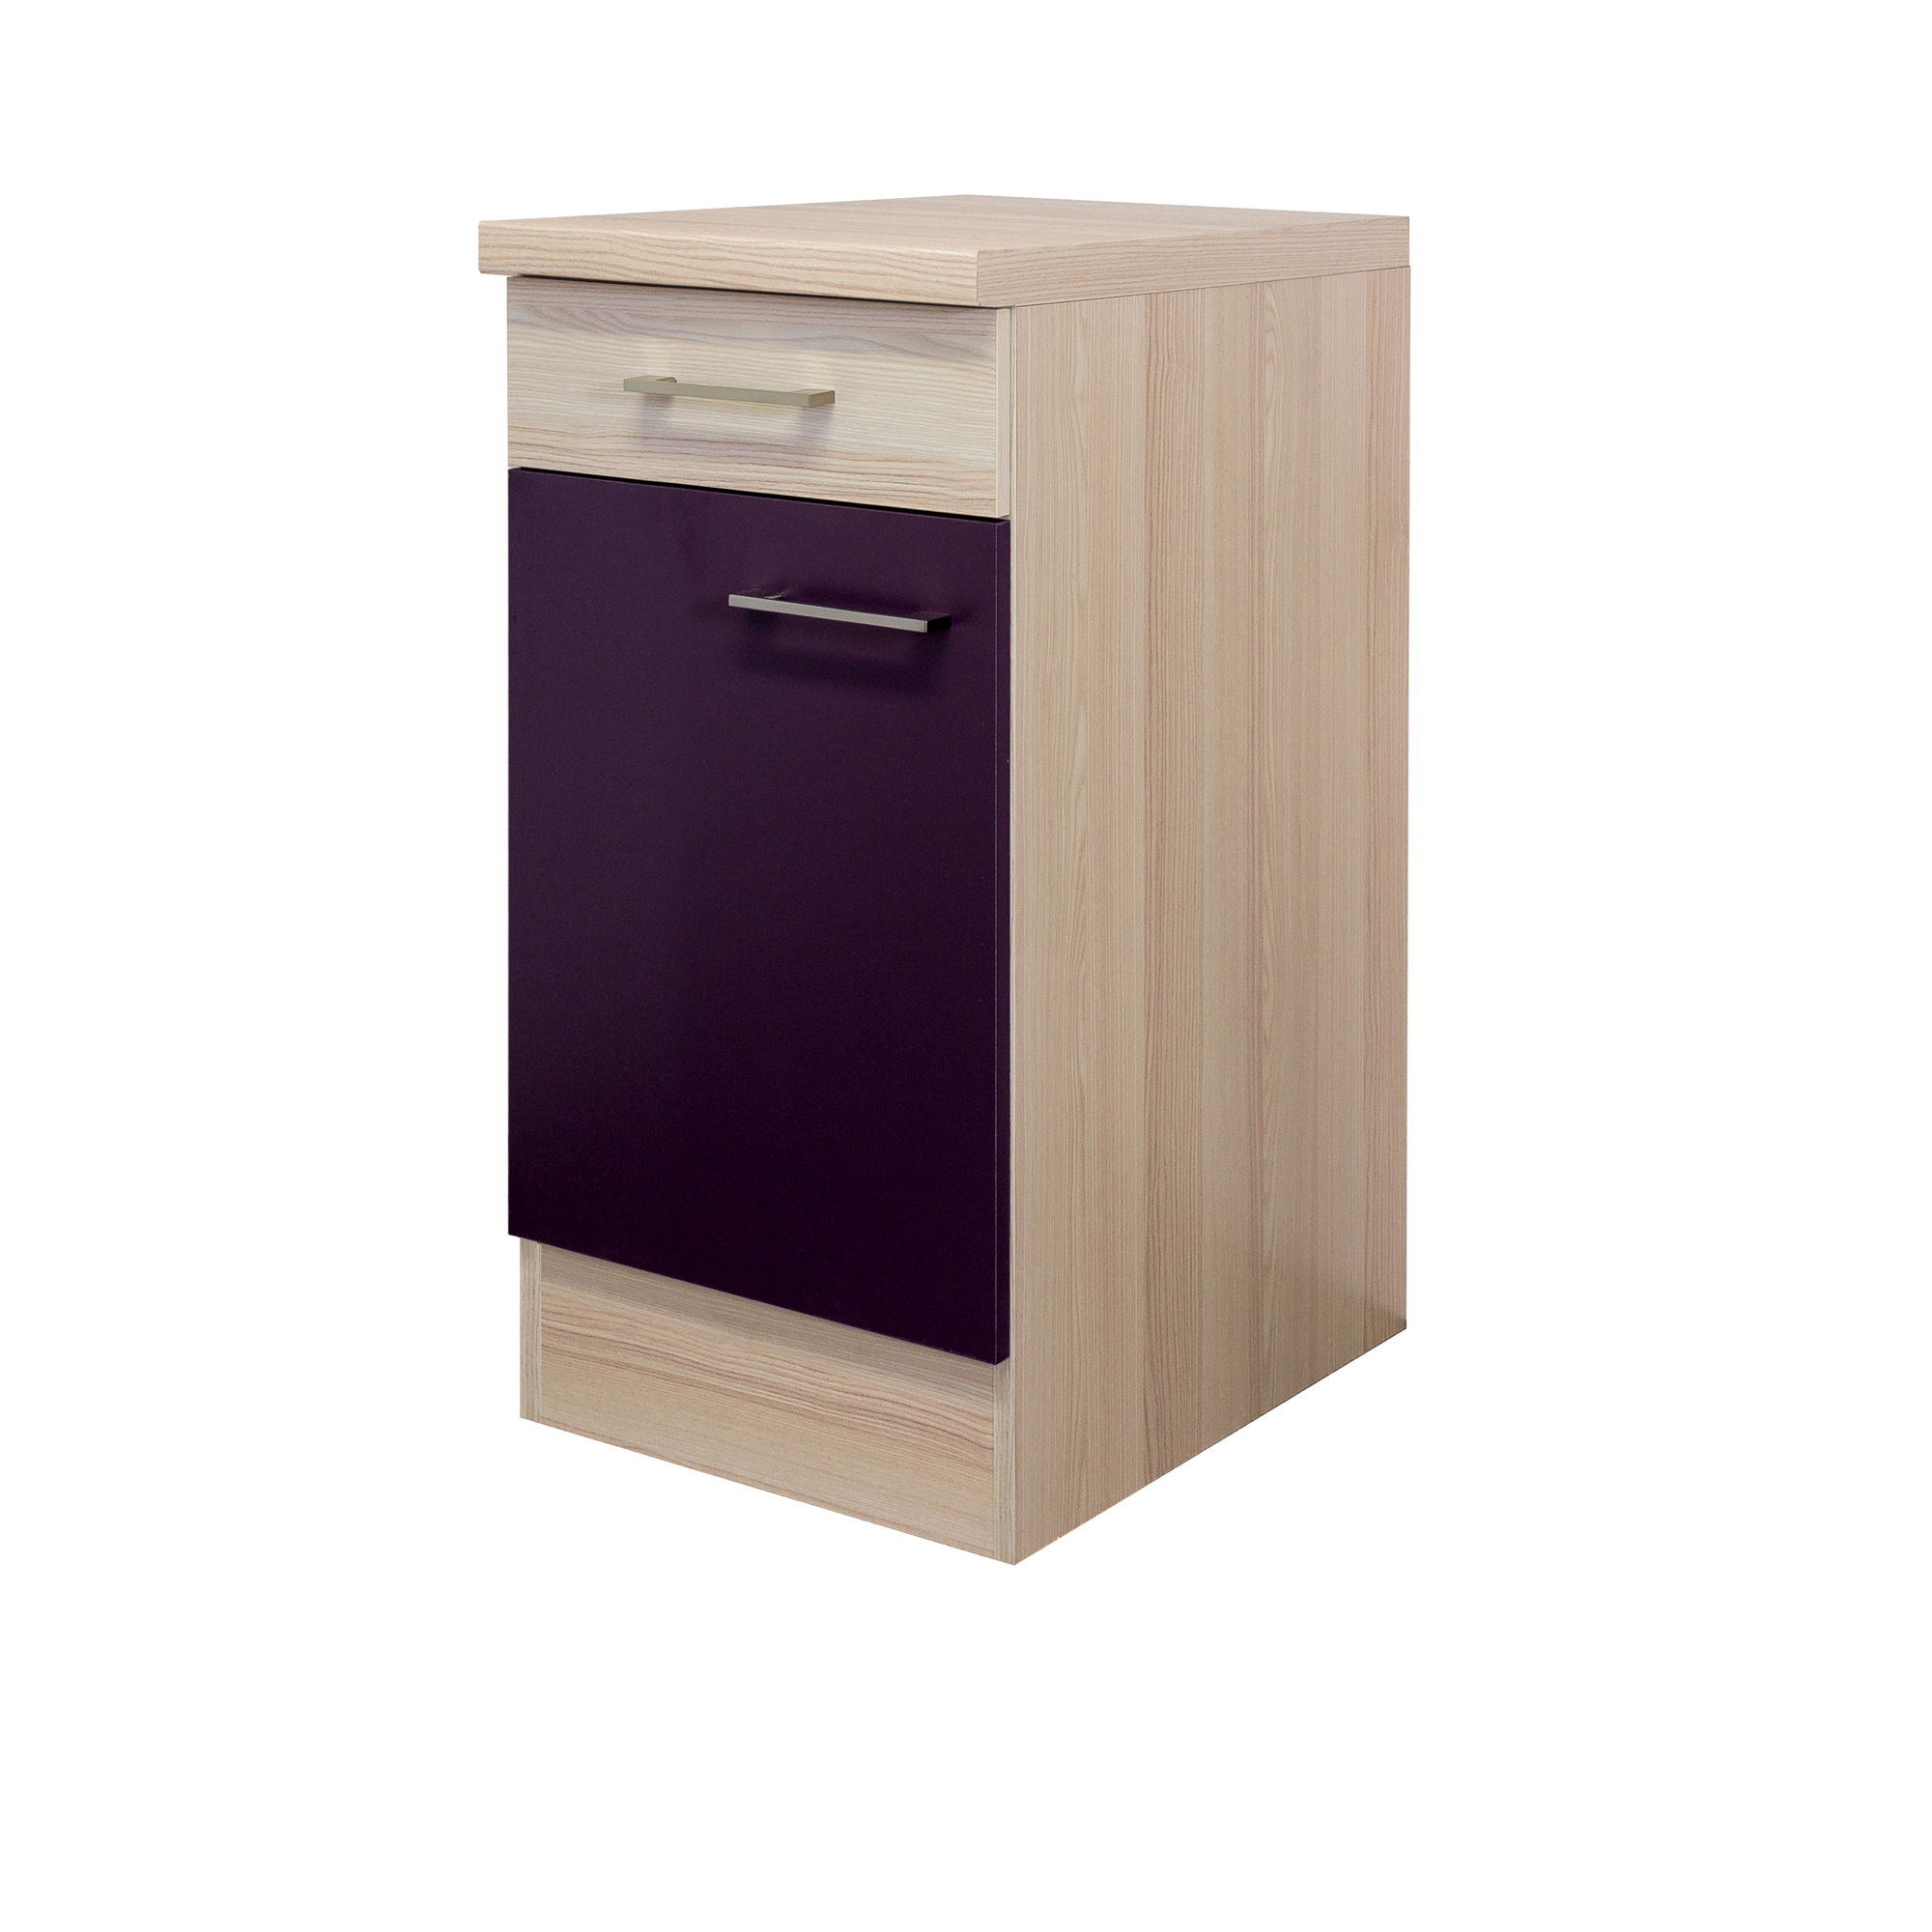 k chen unterschrank focus 1 t rig 40 cm breit aubergine k che unterschr nke. Black Bedroom Furniture Sets. Home Design Ideas